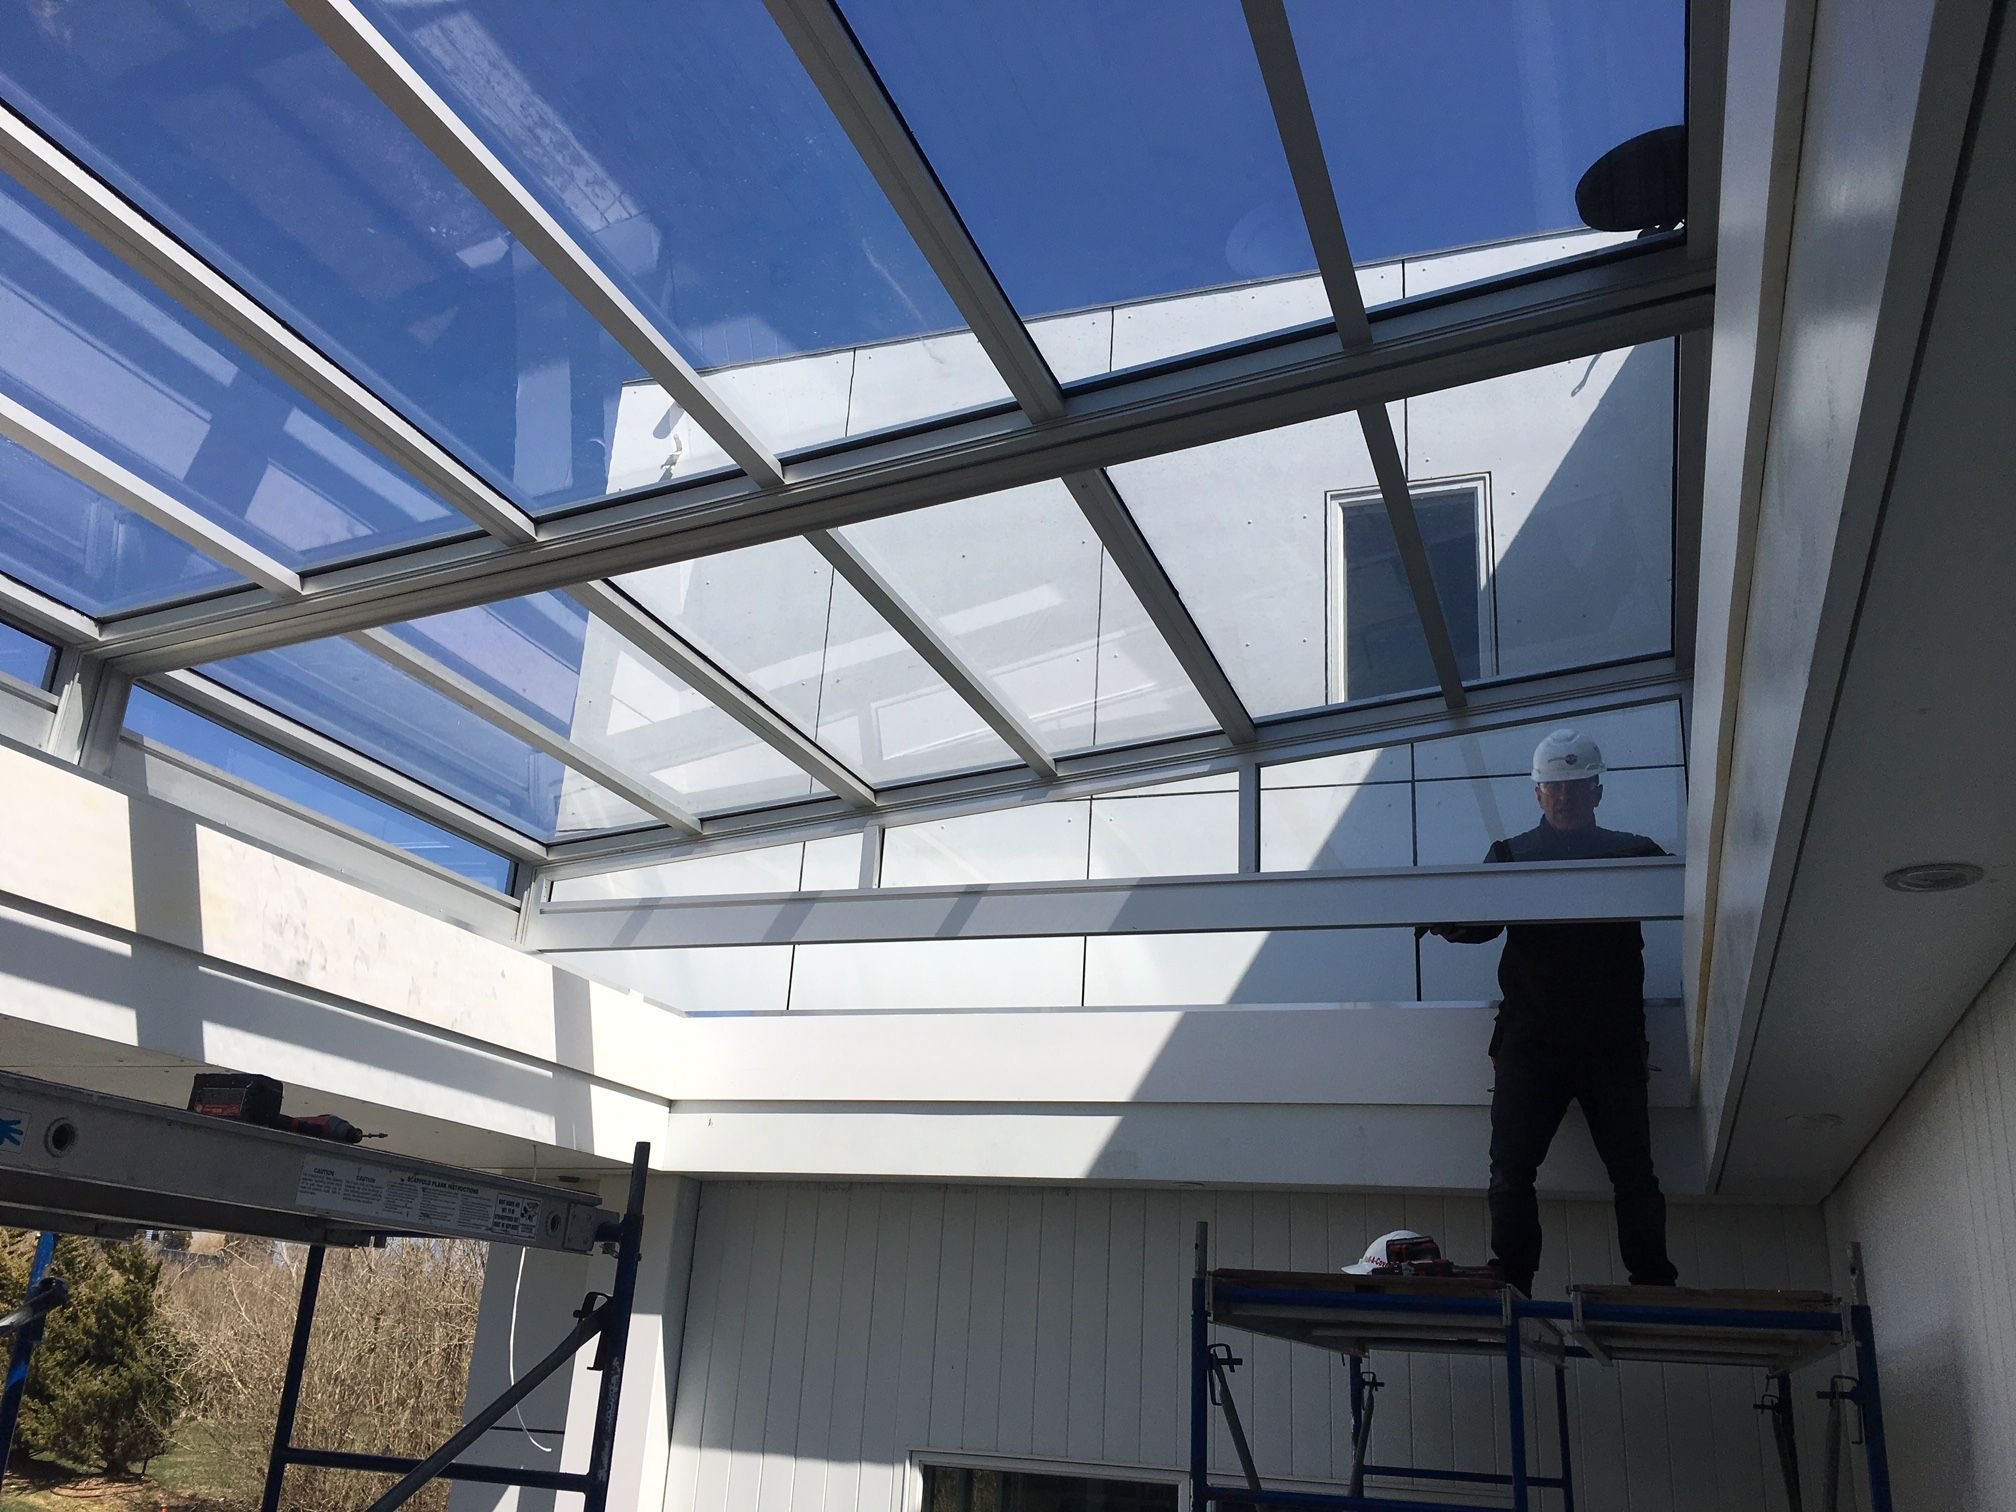 Residential Retractable Skylight Manufactured By Roll A Cover Residential Skylights Skylight Outdoor Patio Space